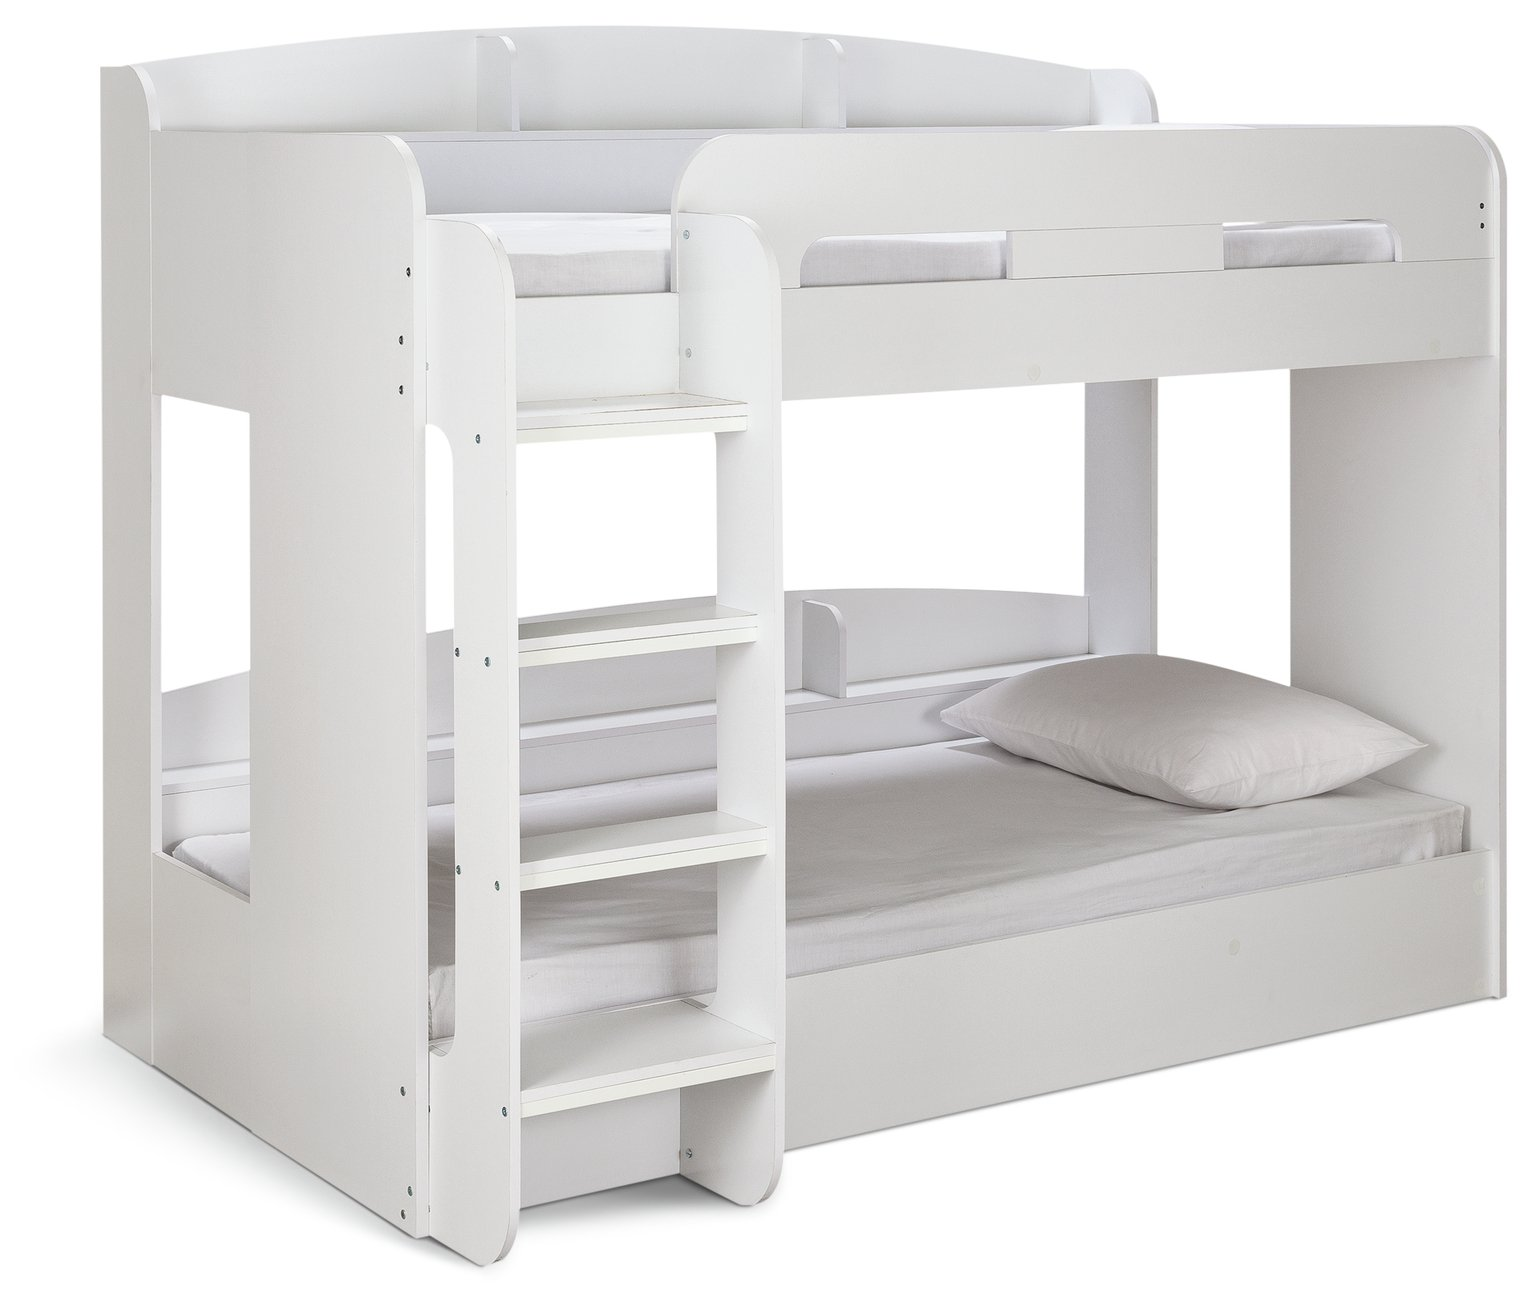 Argos Home Ultimate White Bunk Bed Frame